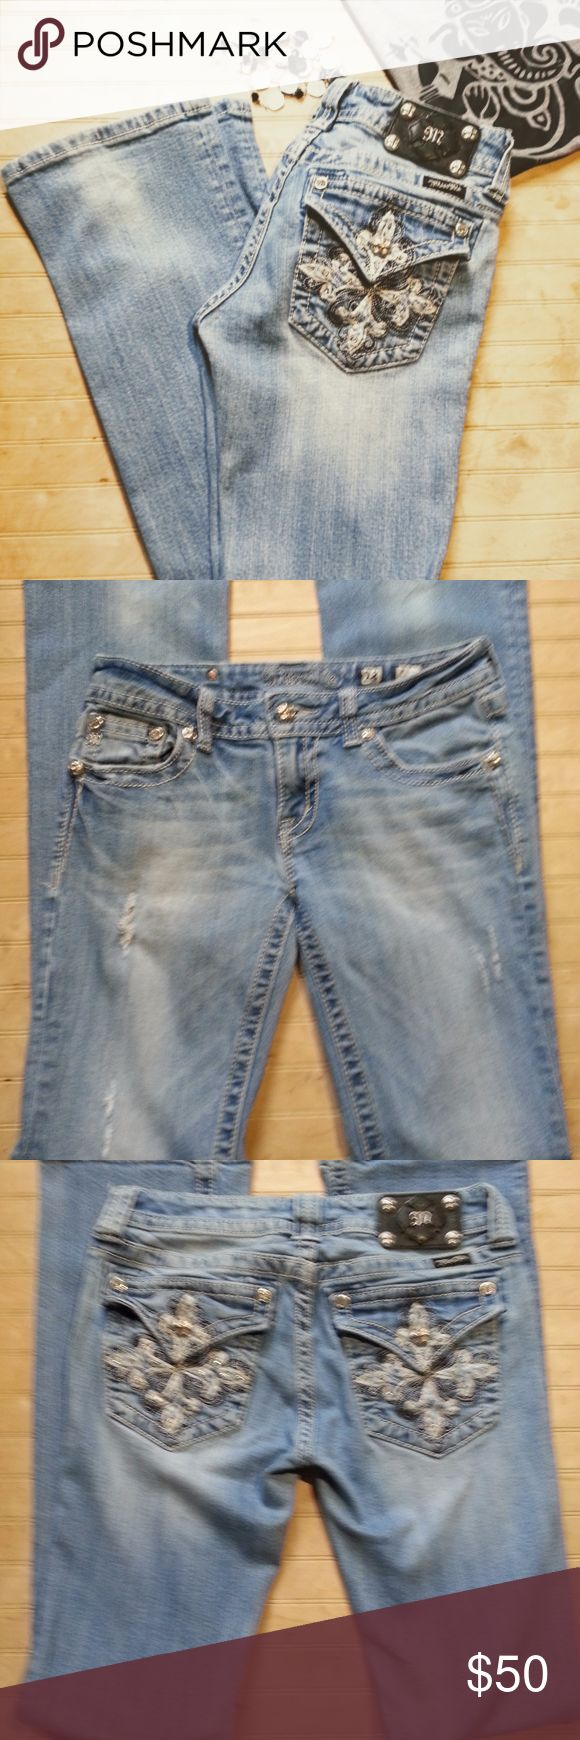 """Miss Me Bootcut Jeans!  Make an offer! Flap pocket with white and blue Fleur-de-lis cross design, distressed thigh, medium wash, white contrast stitching, rhinestone and large crystal rivets, and classic black logo patch.   These are in excellent condition with no staining or damage besides factory distressing.  Waist 14.5"""" Rise 7.5"""" Inseam 32"""" Leg 8"""" Miss Me Jeans Boot Cut"""